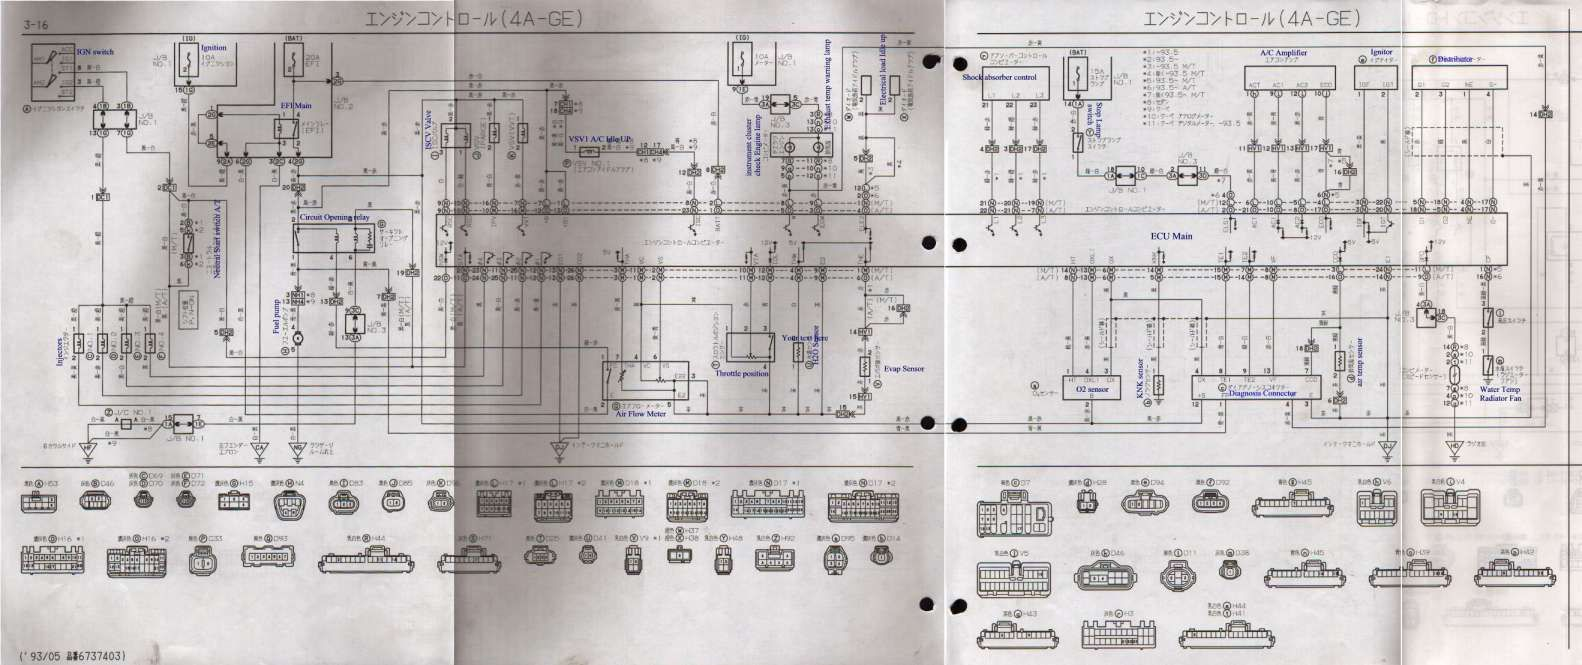 Toyota 4efte Engine Wiring Diagram And Toyota Efte Wiring Diagram Wiring Library Electrical Wiring Diagram Electrical Diagram Toyota